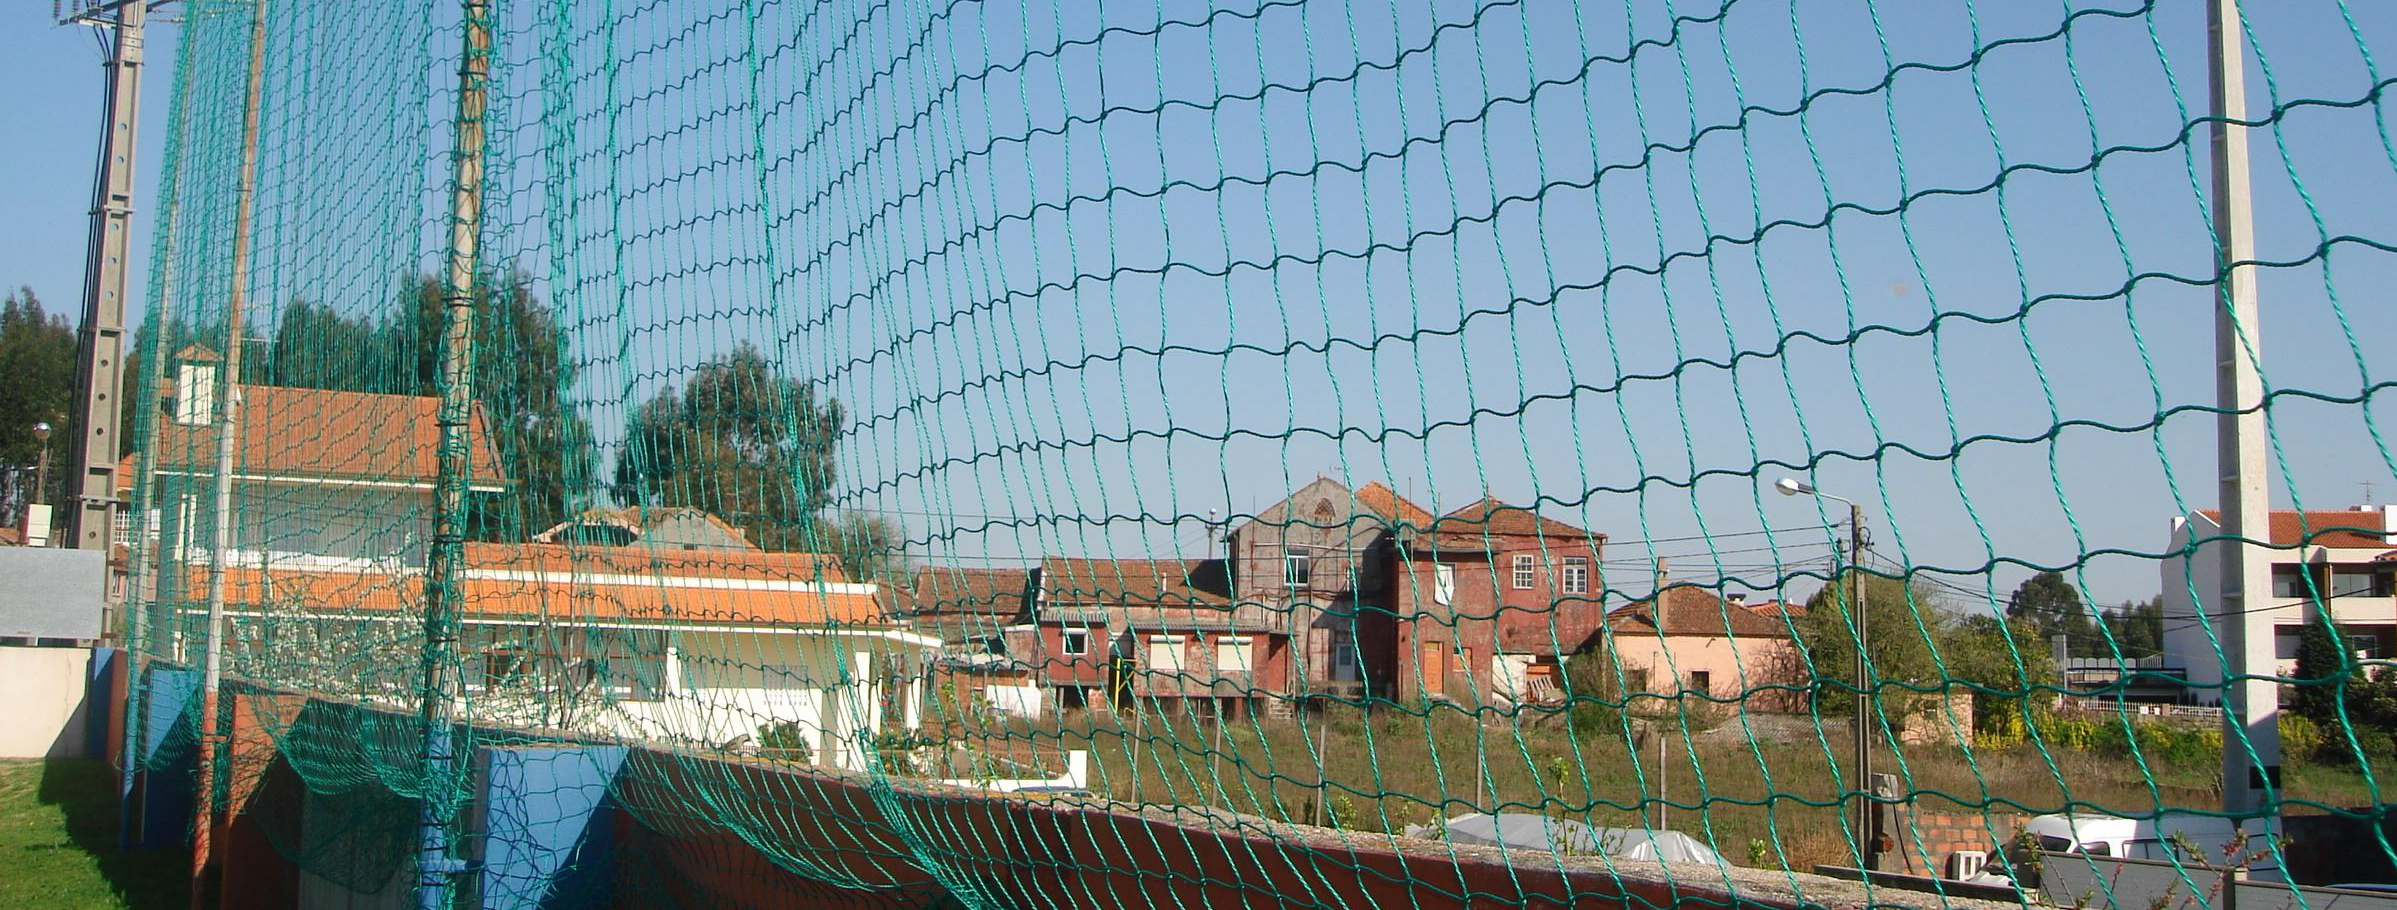 Fencing and Safety Nets